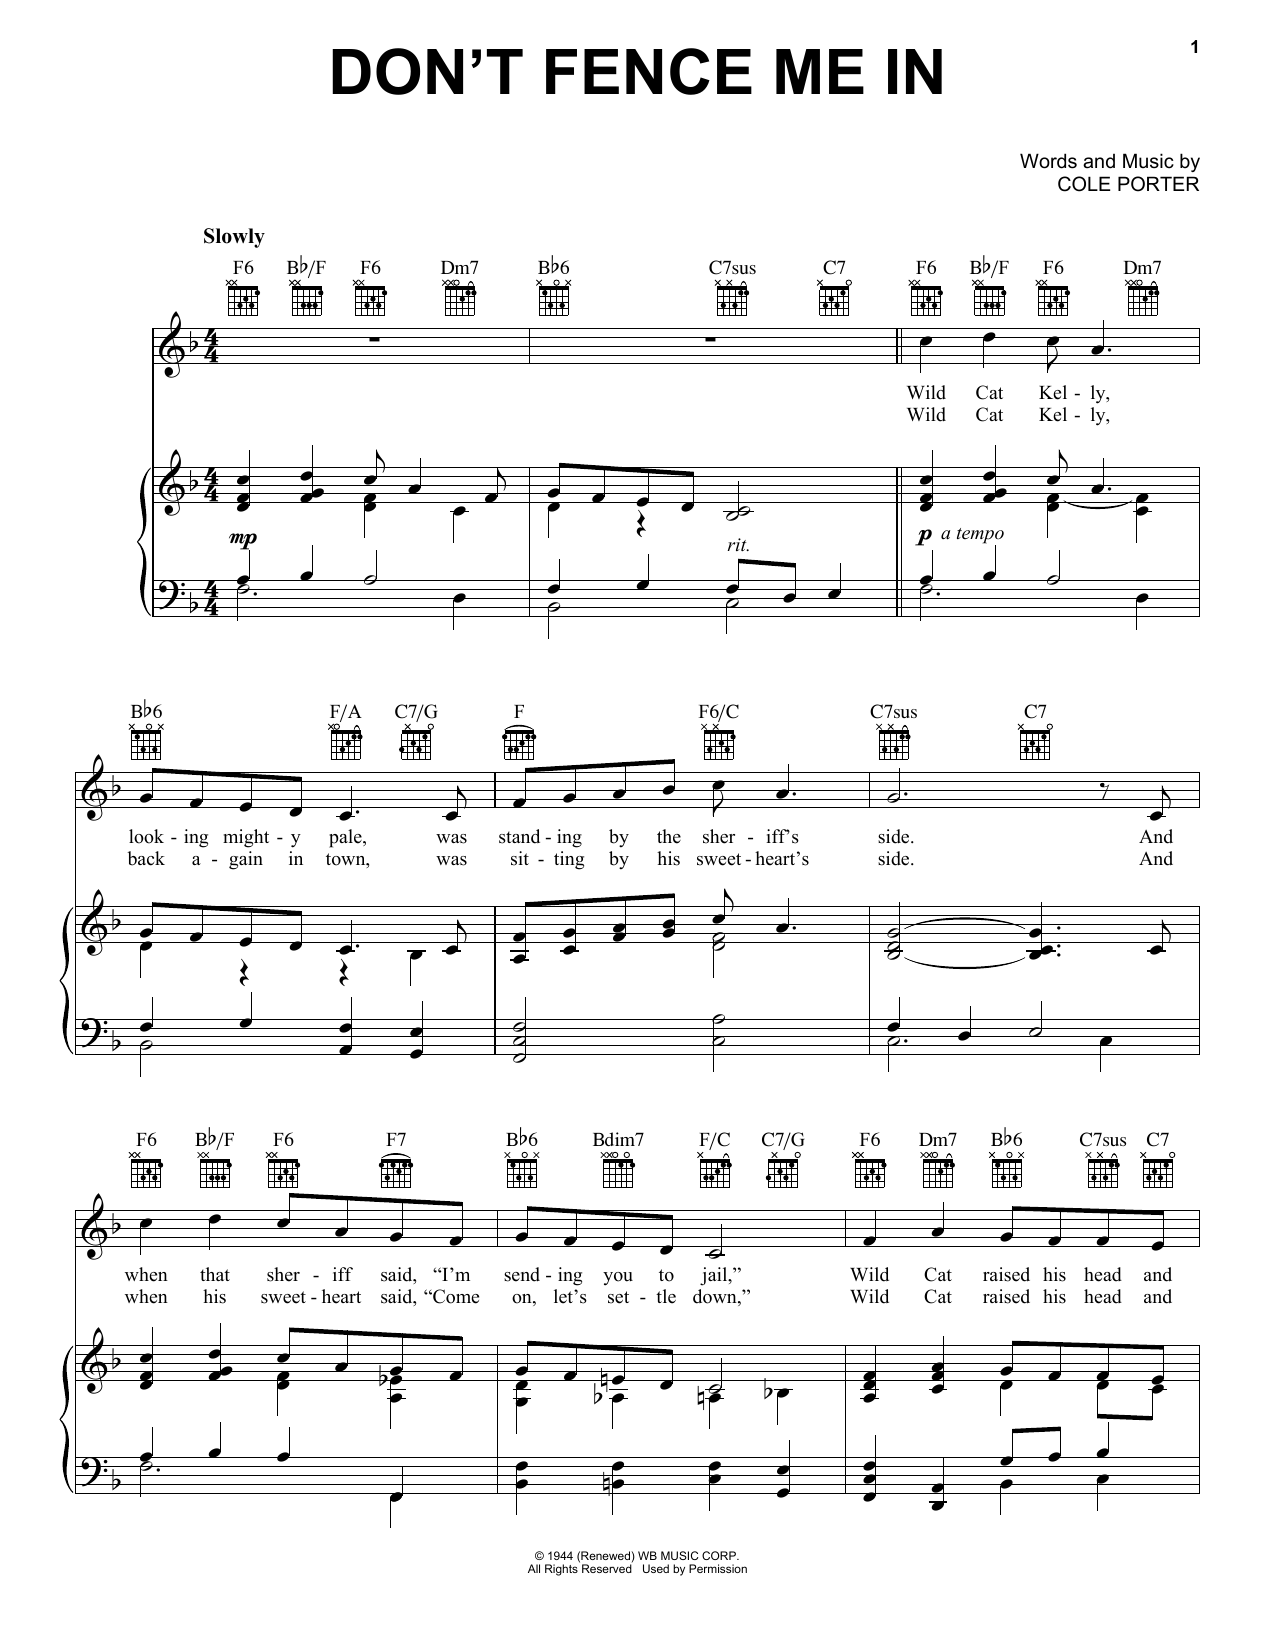 Cole Porter Don't Fence Me In sheet music notes and chords. Download Printable PDF.